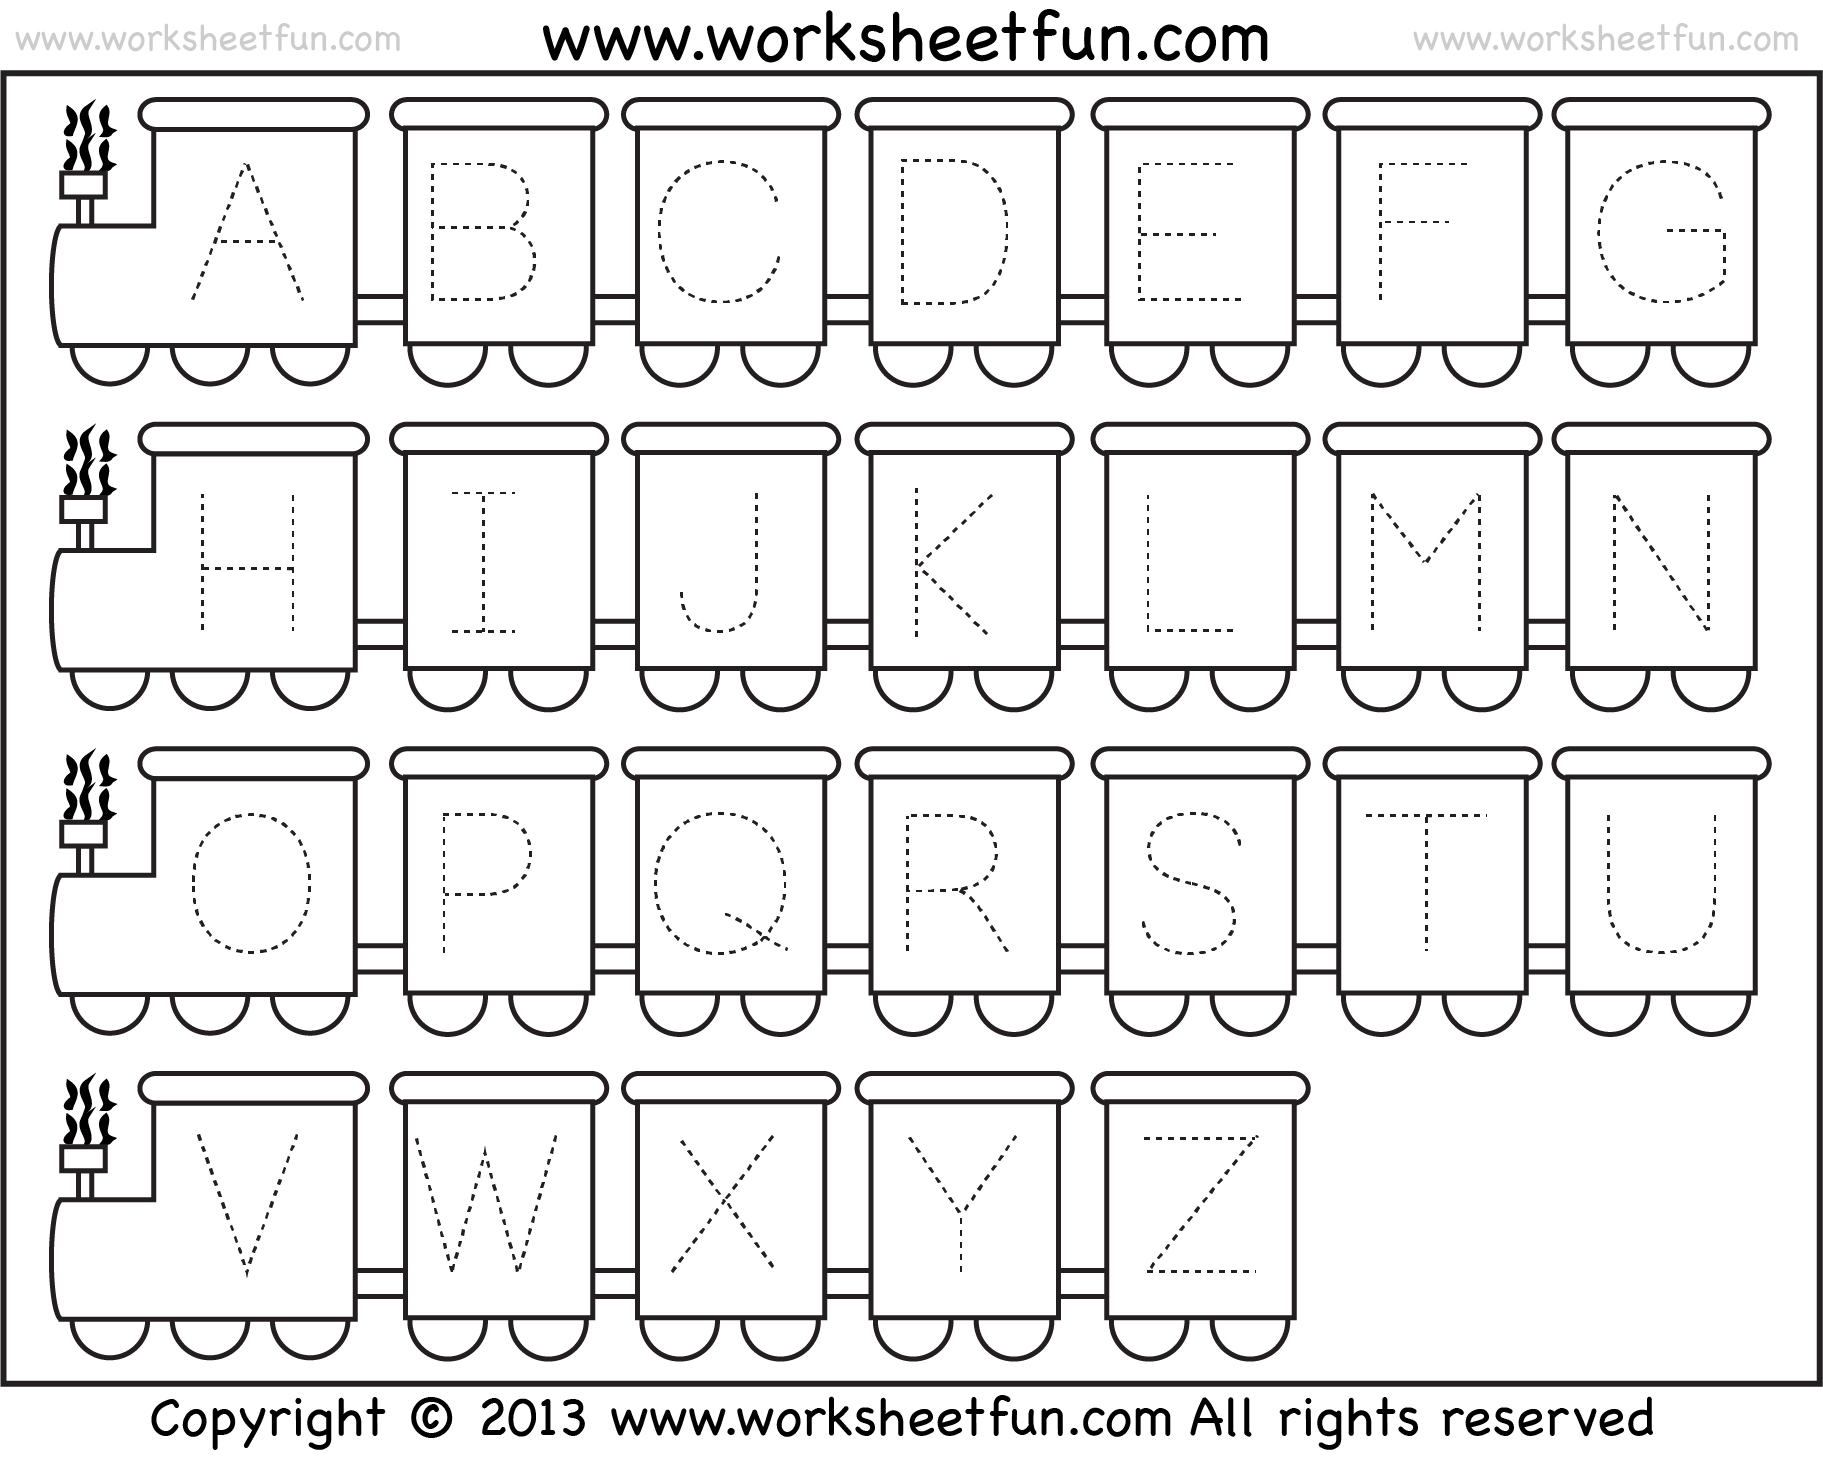 worksheet Kindergarten Tracing Worksheets letter tracing worksheet train theme free printable worksheets tracing